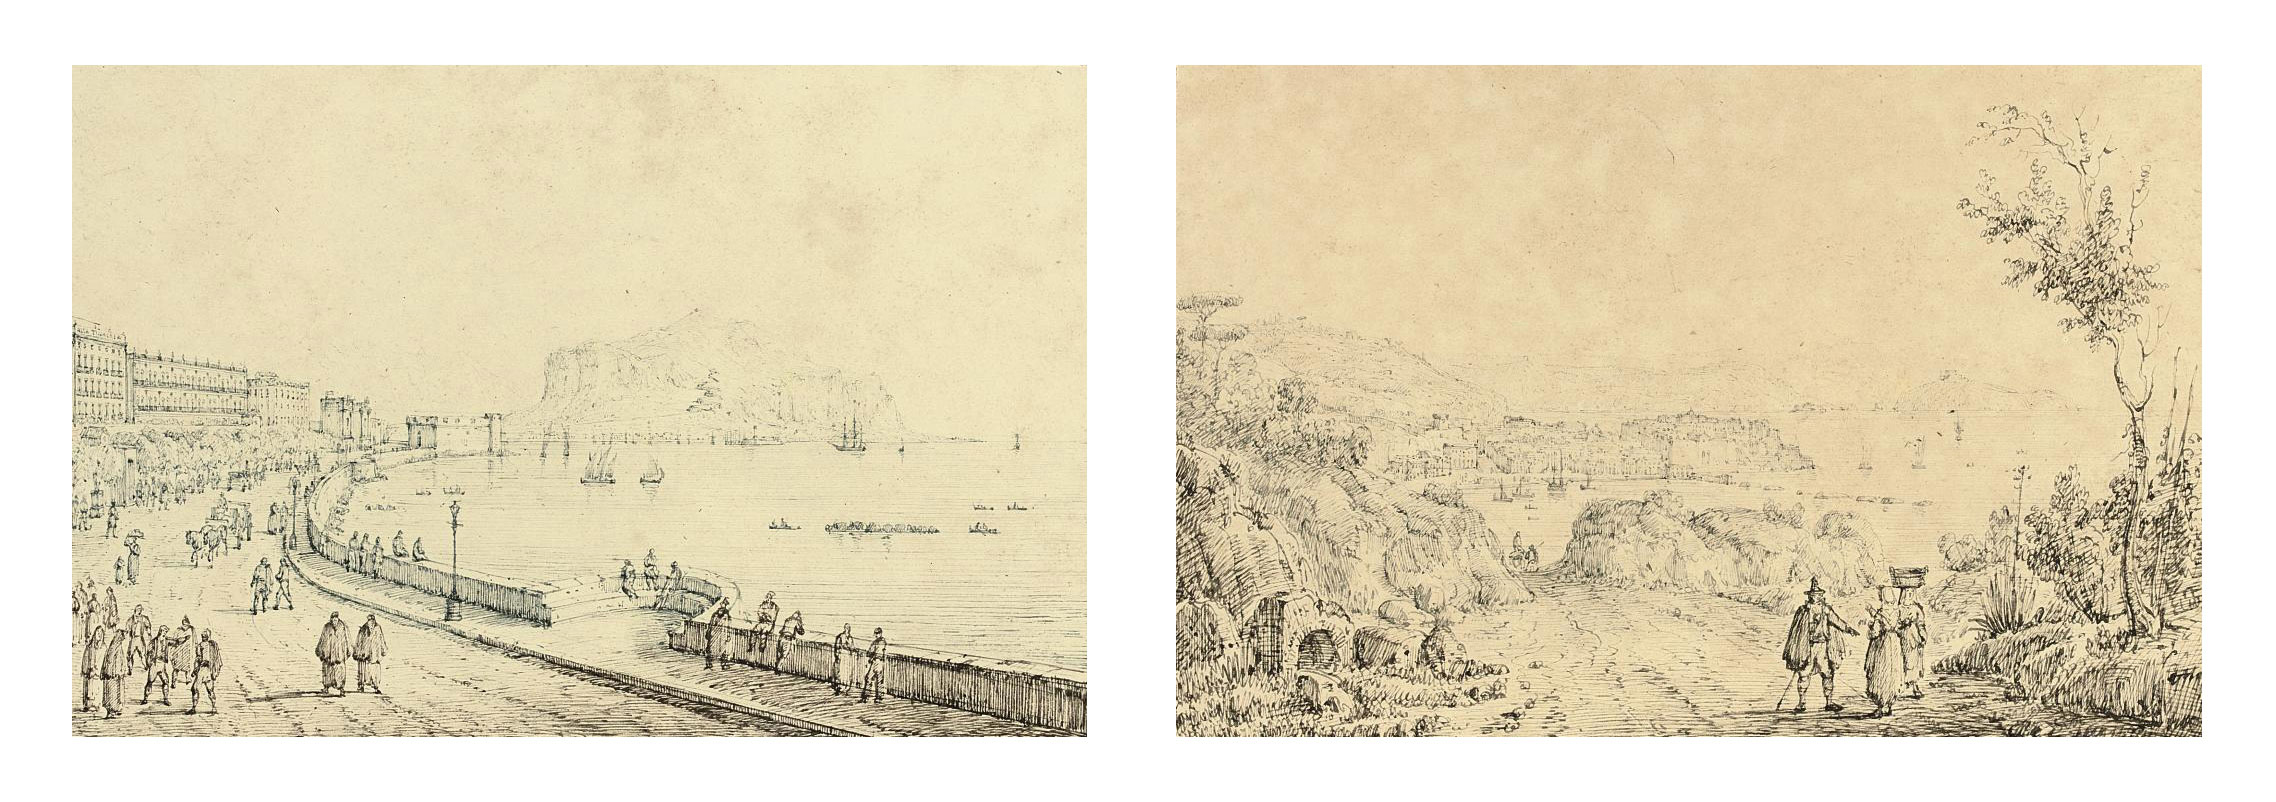 View of the harbour of Palermo; and View of Pozzuoli from Monte Nuovo on the Campi Flegrei